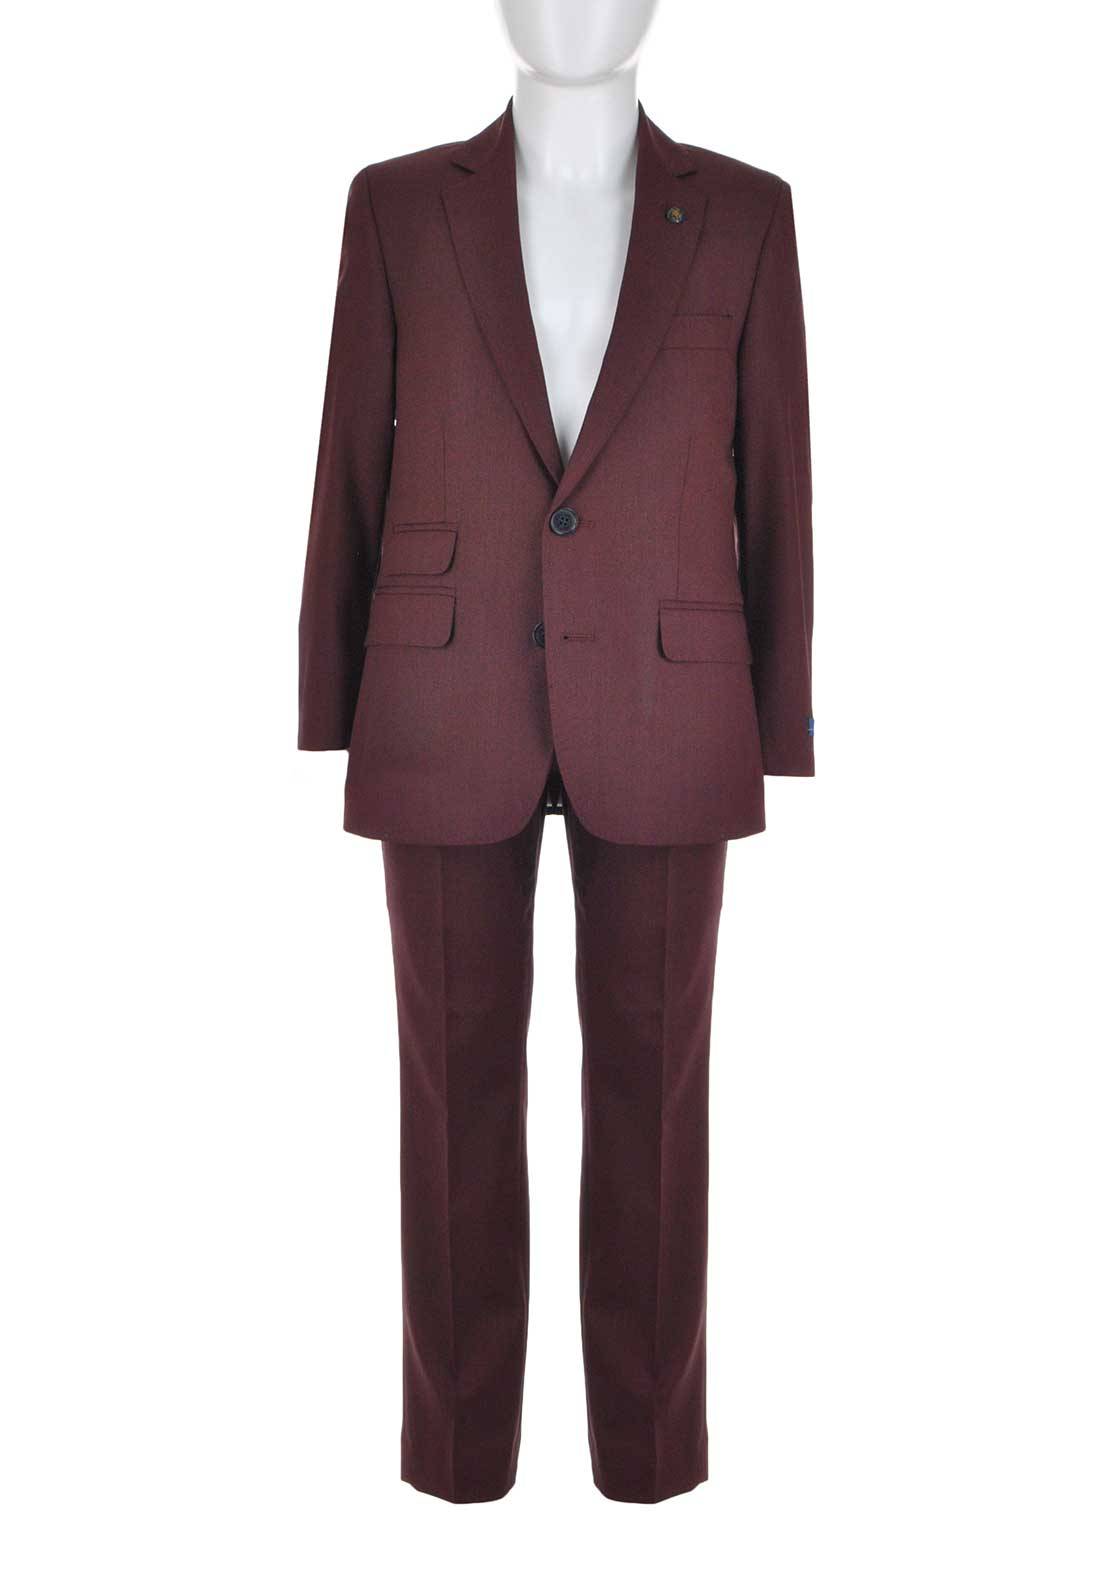 1880 Club Boys Woven Two Piece Suit, Wine